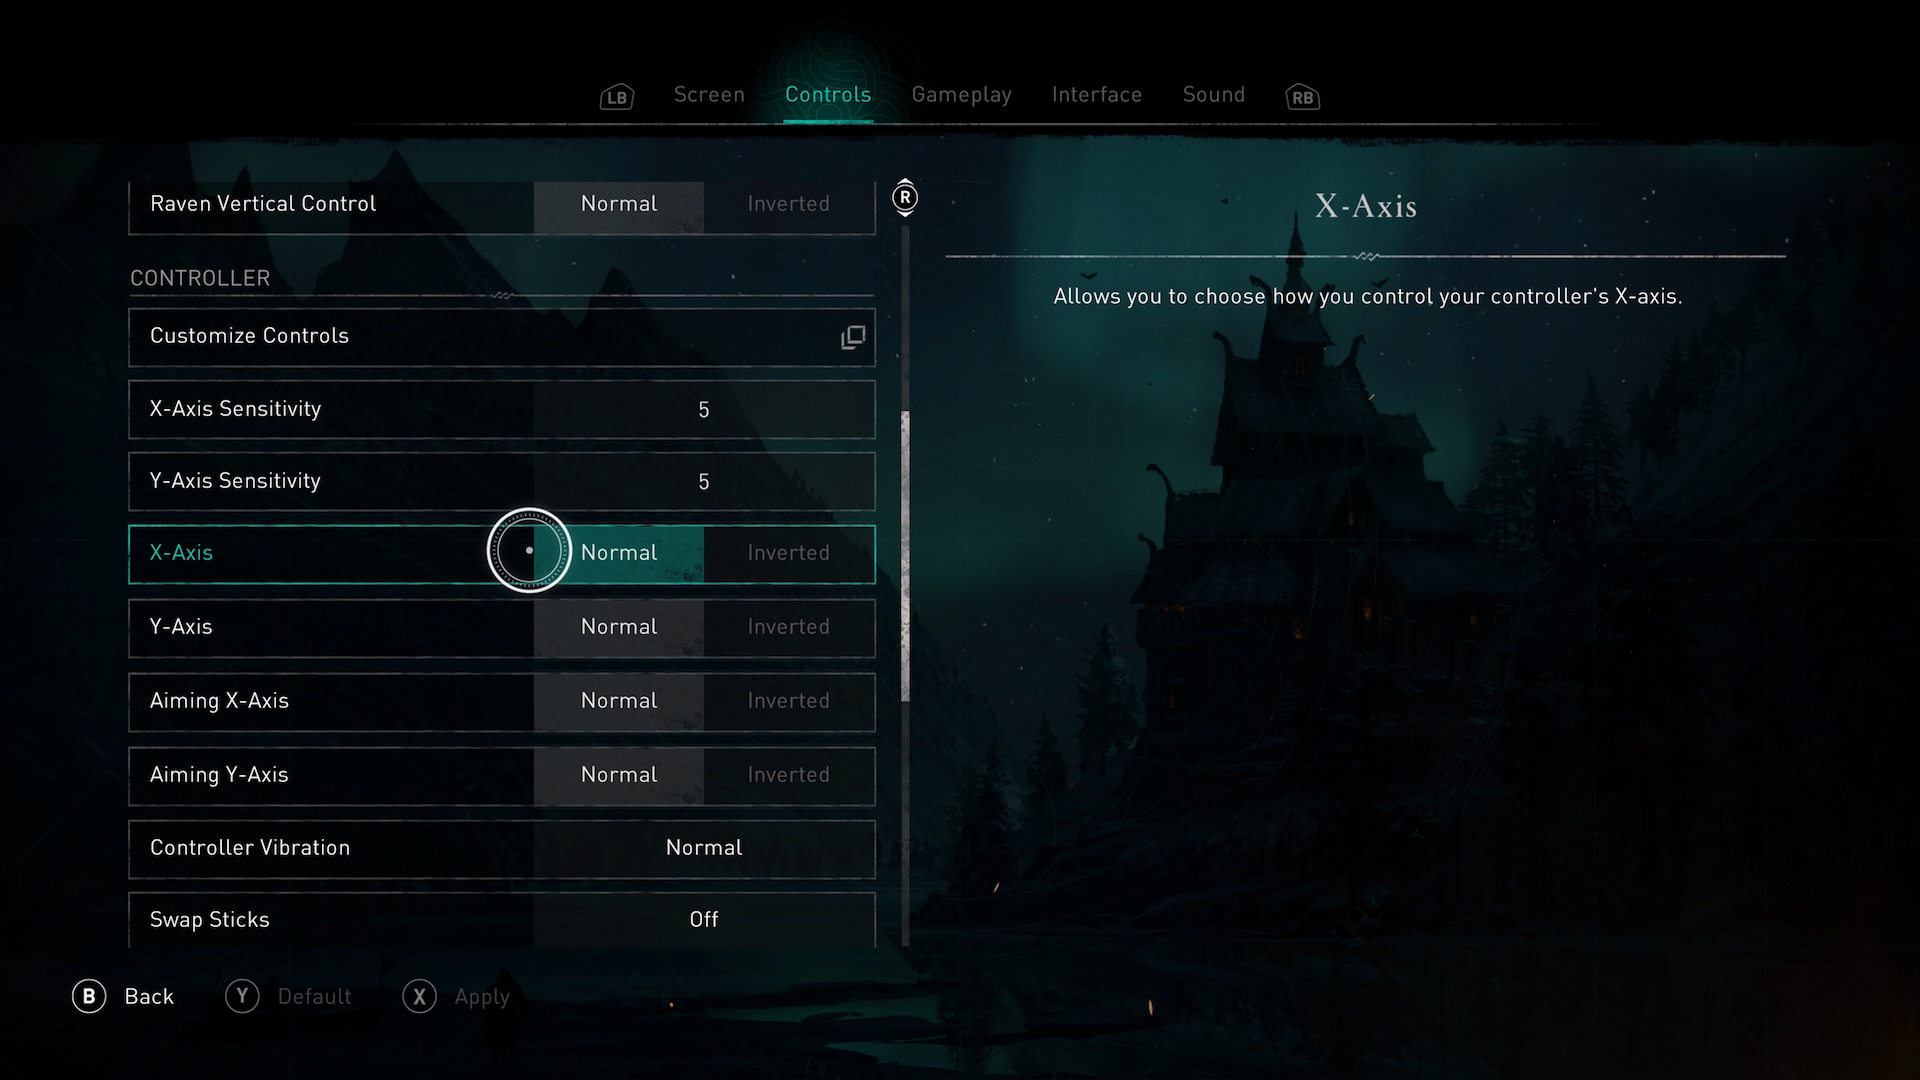 A screenshot showing the Invert joystick options in Assassins Creed Valhalla.